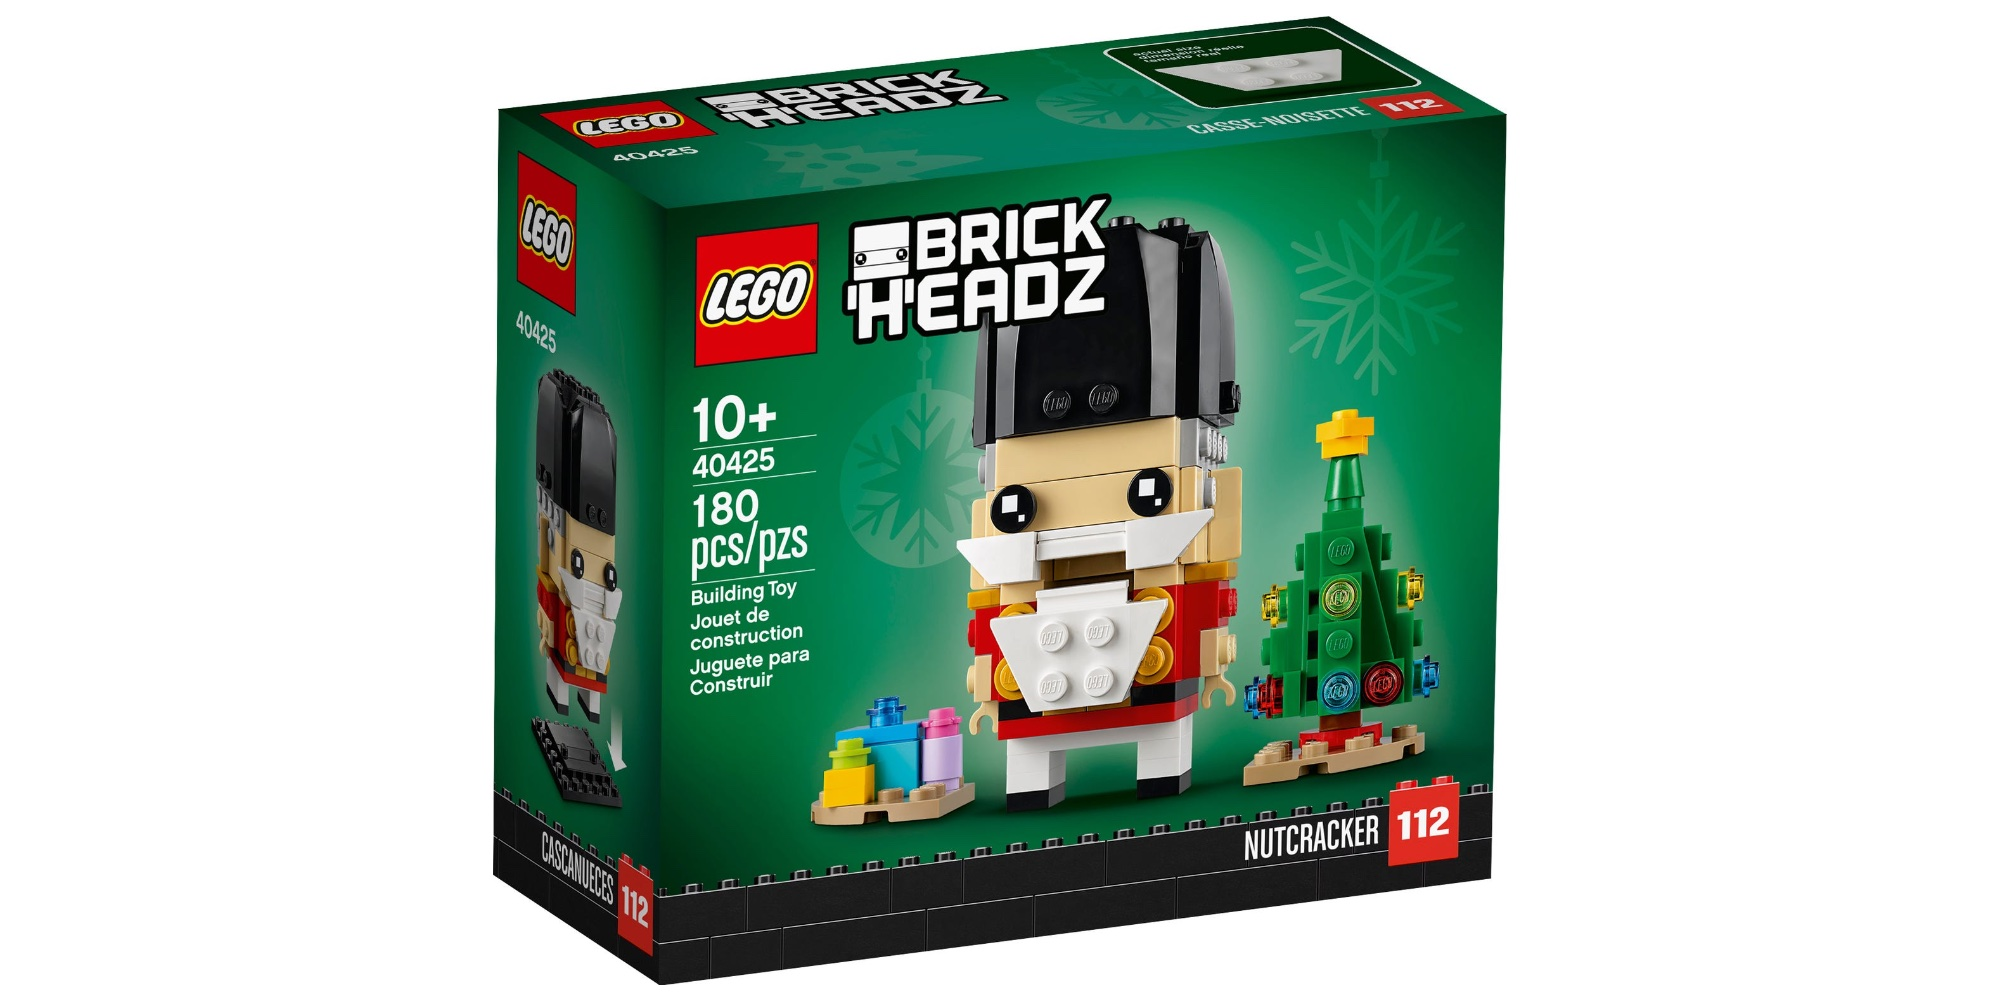 Lego Charles Dickens Tribute Tree Ornaments And More 9to5toys